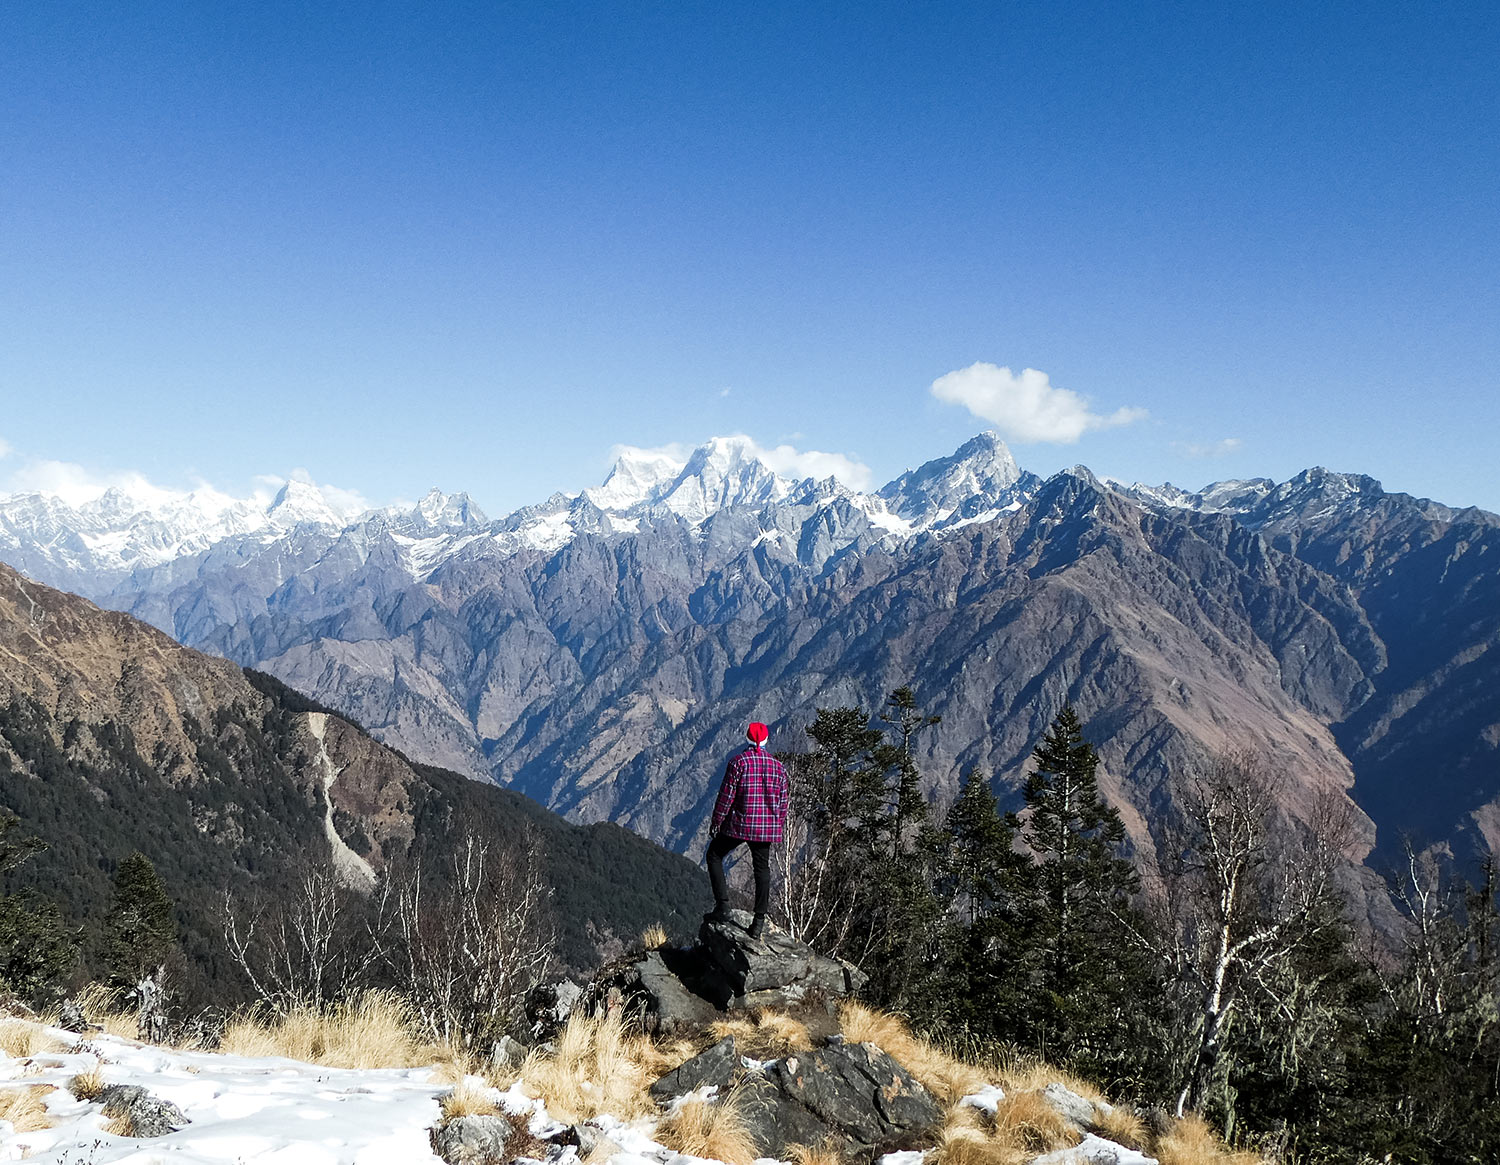 The best Himalayan travel adventure on earth: 3 day Kuari Pass Trek. A man stands at the peak of a mountain with a Santa hat on looking out over the Himalayas